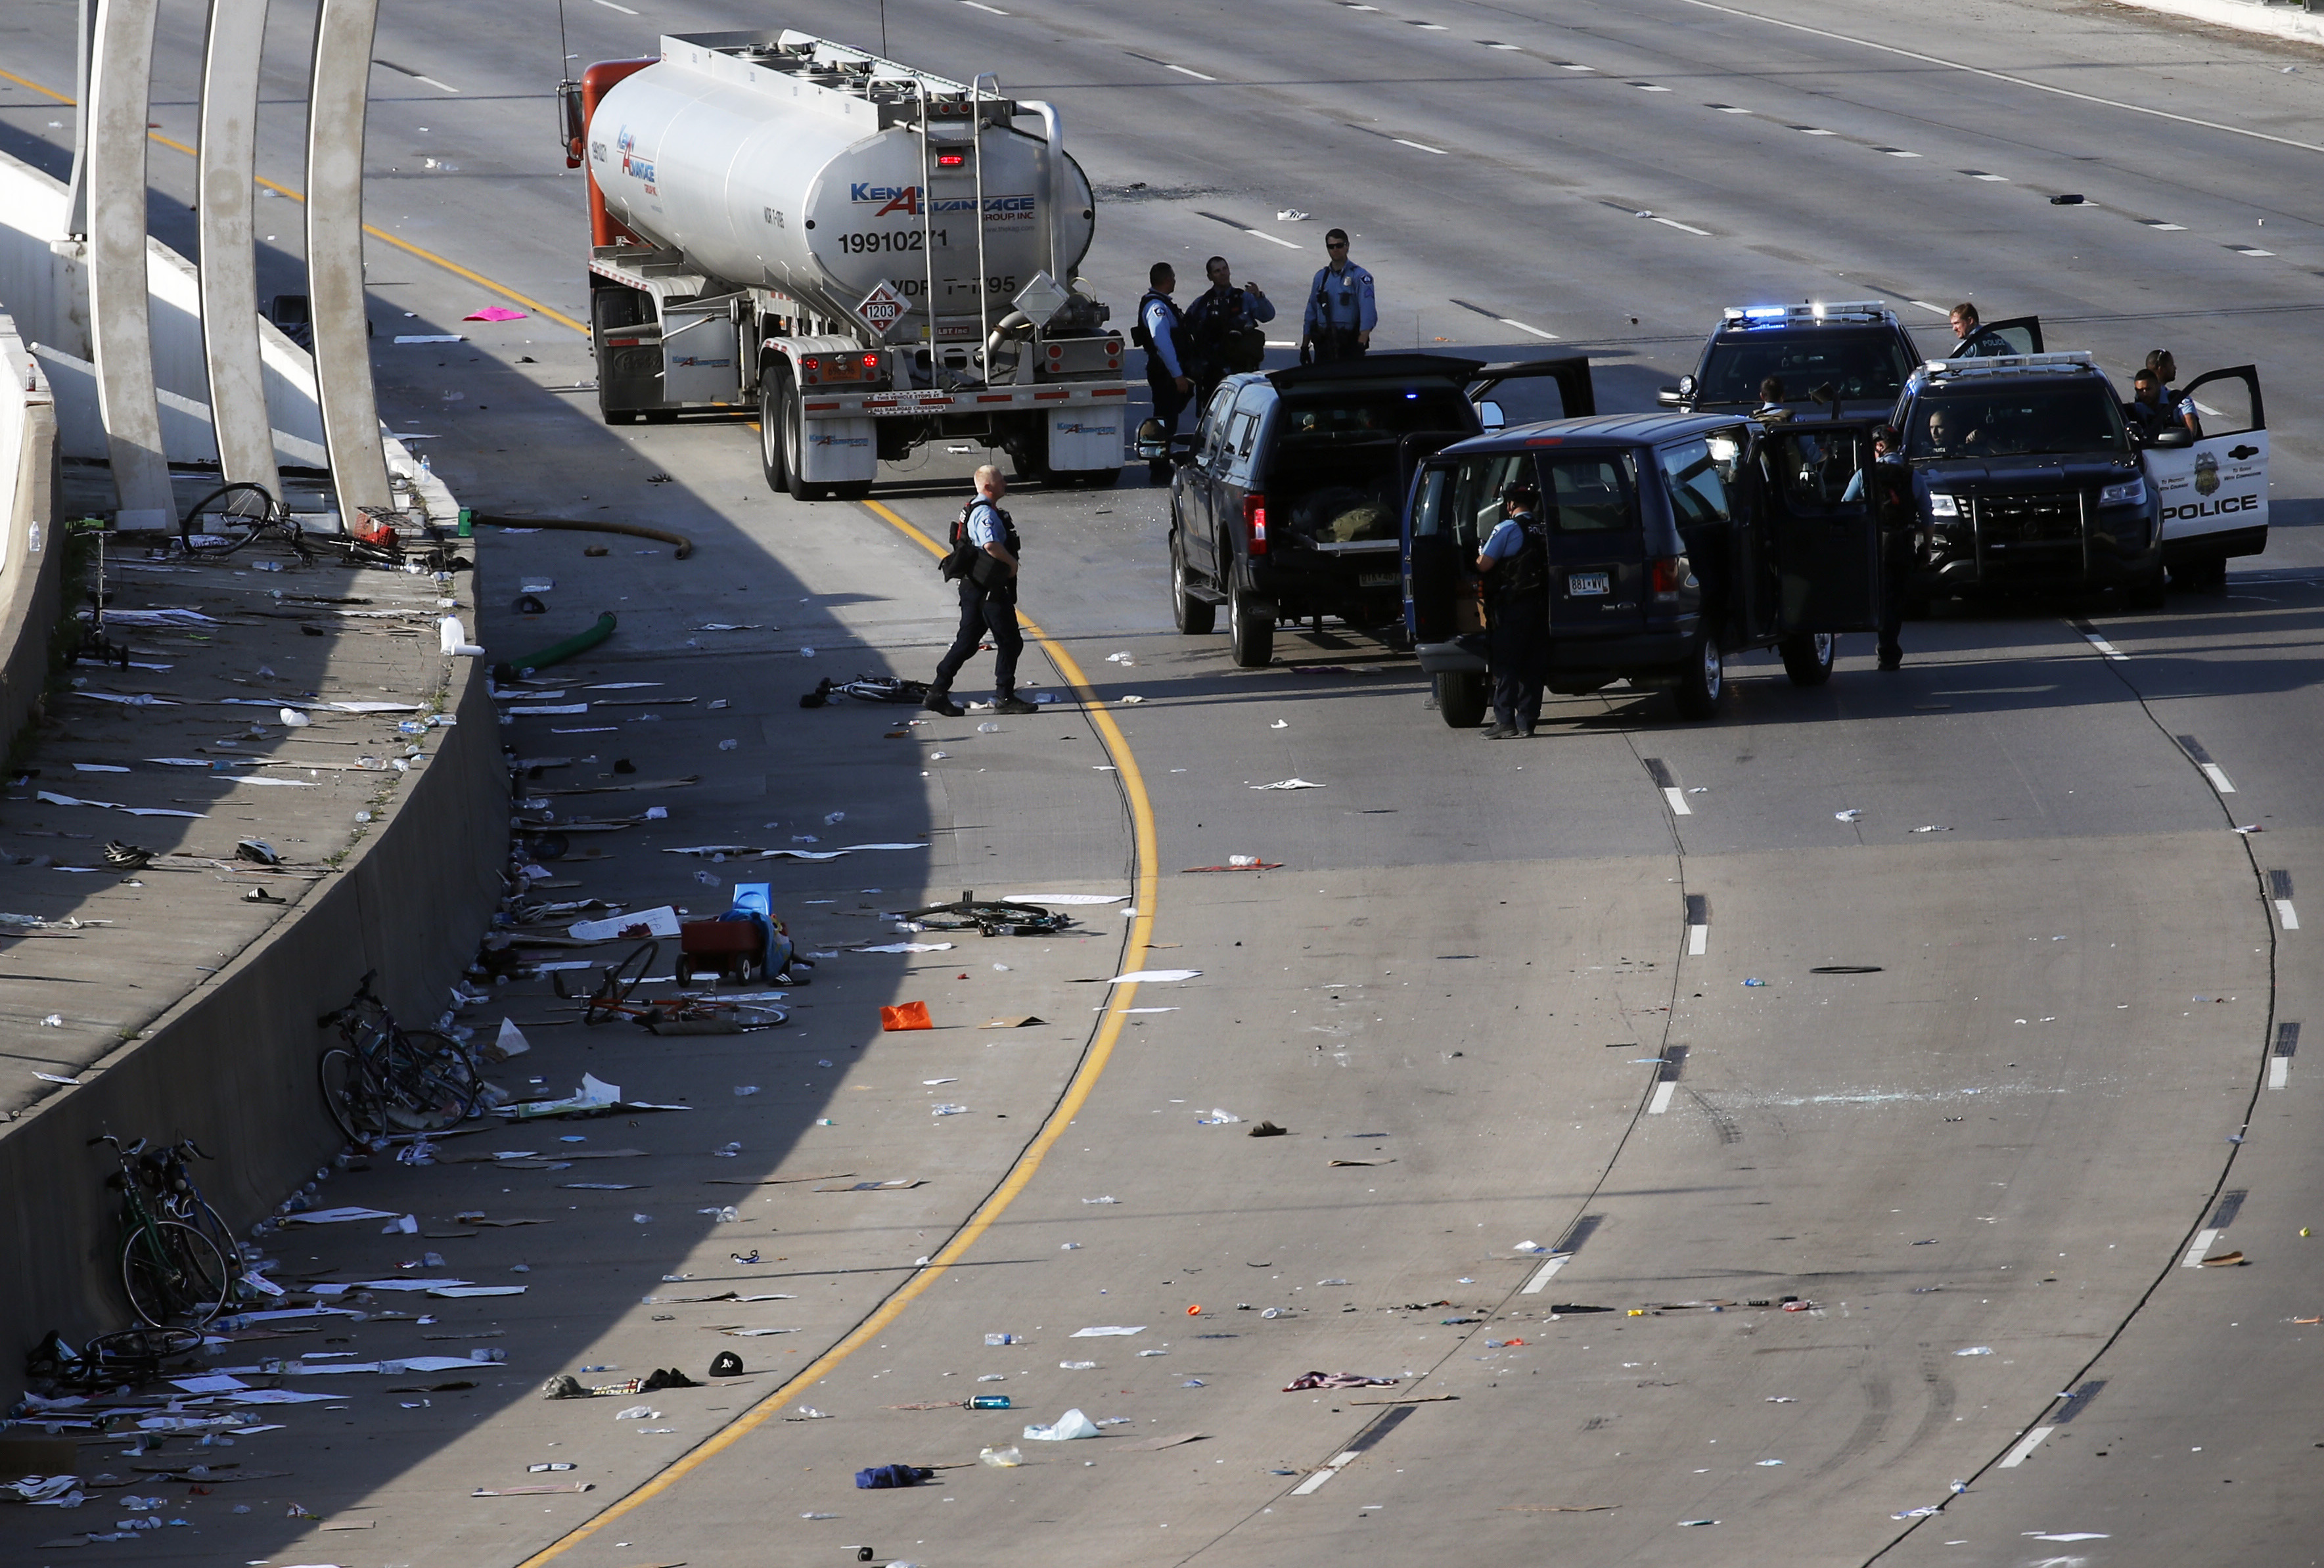 Police clear the area where a tanker truck rushed to a stop among protesters on an interstate highway on Sunday in Minneapoli